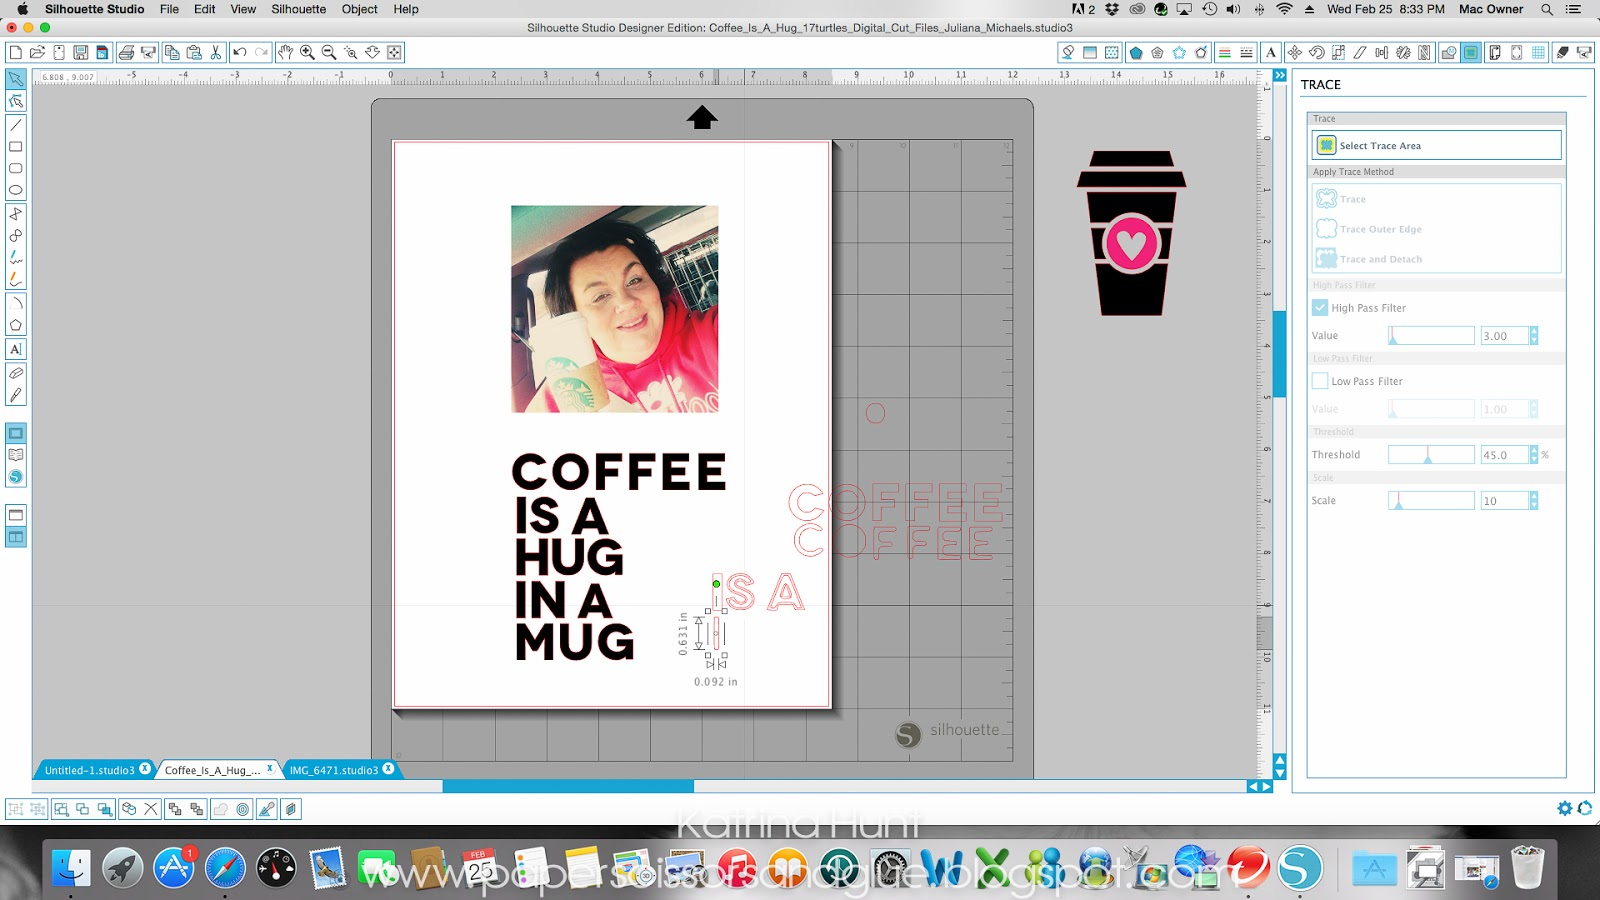 Coffee Is A Hug In A Mug Scrapbook Page and Silhouette Sketch Pen Tracing Tutorial by Katrina Hunt featuring 17turtles Digital Cut Files